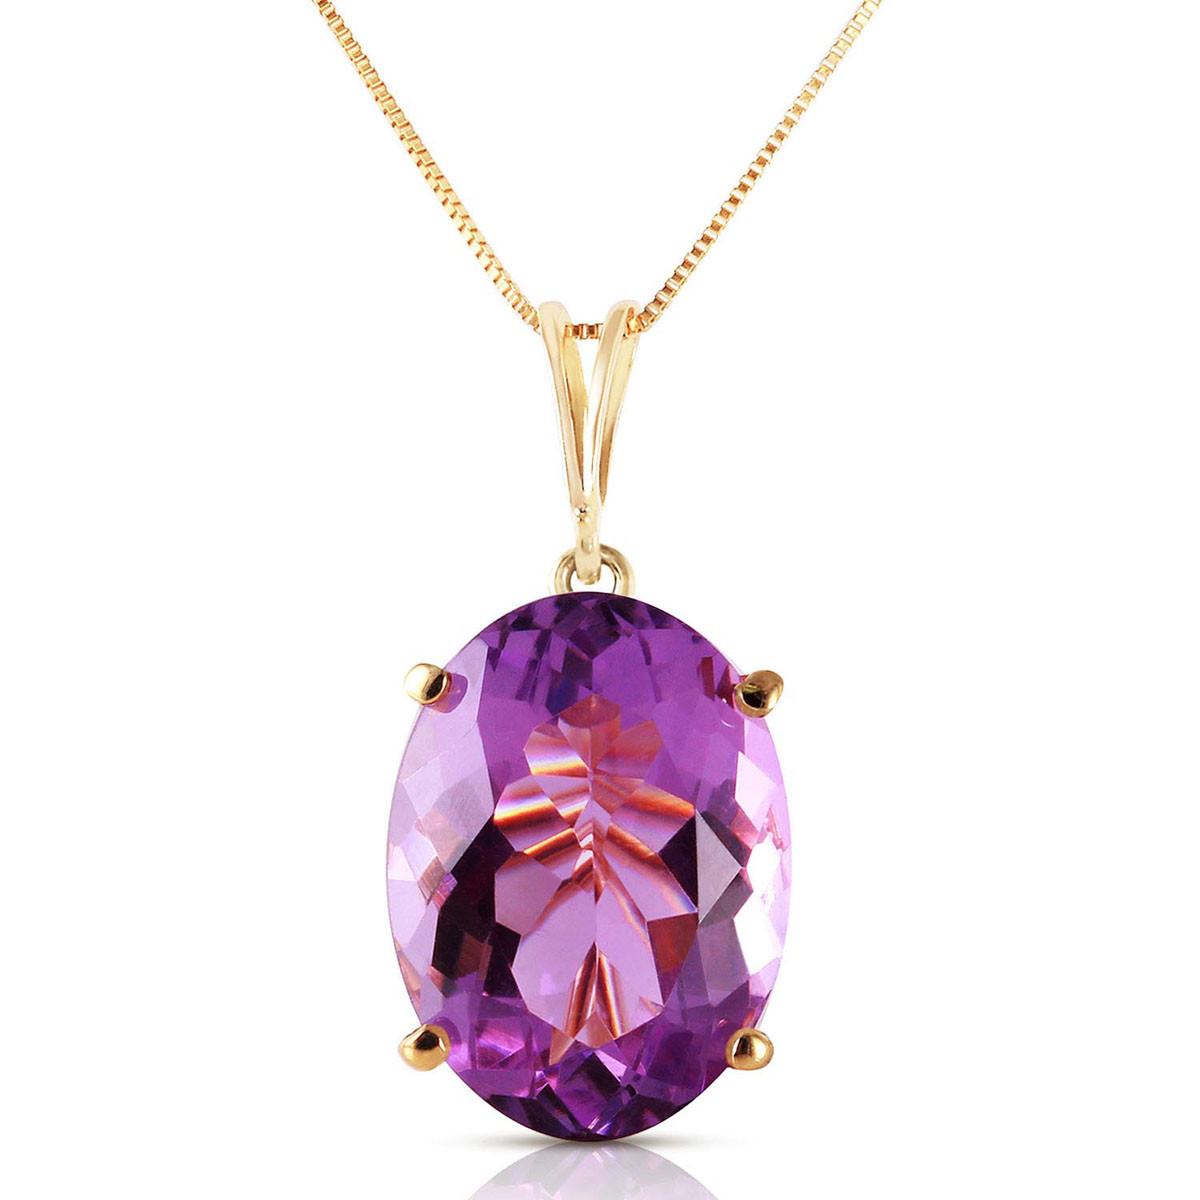 Amethyst Oval Pendant Necklace 7.55 ct in 9ct Gold